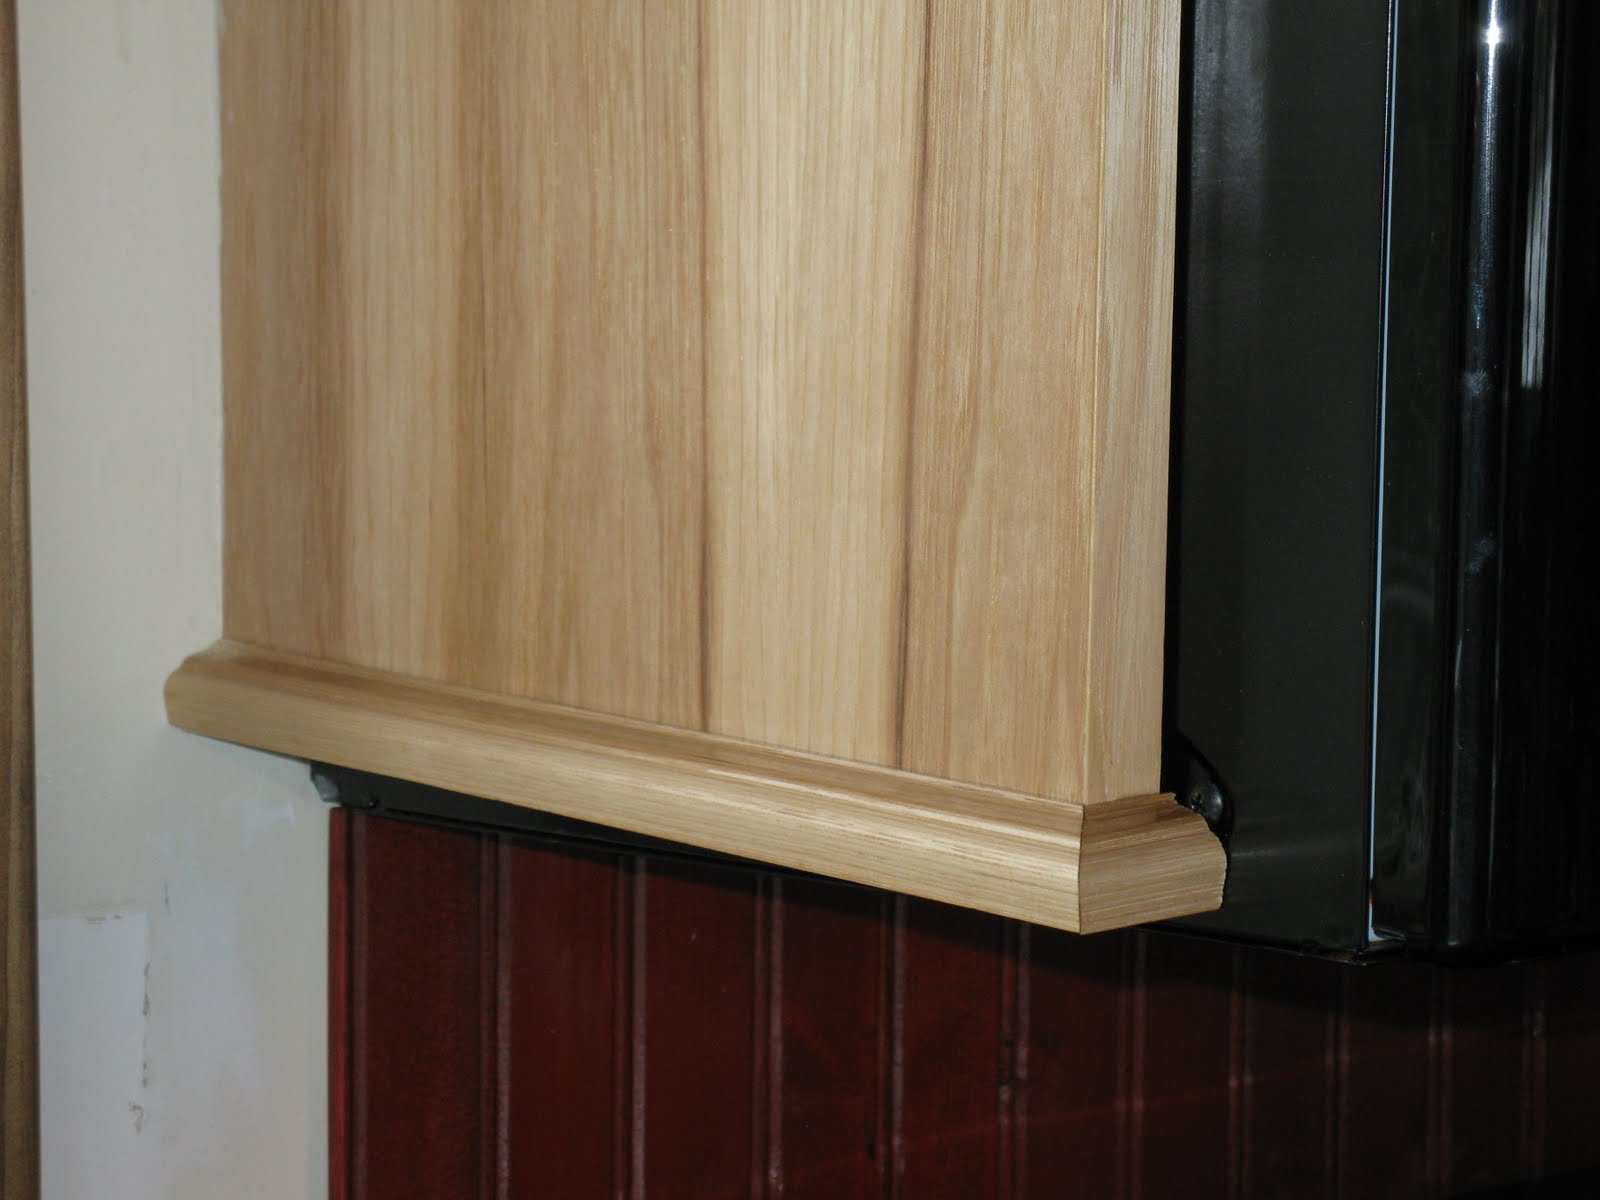 Cabinet Bottom Trim Installing Molding For Under Cabinet Lighting A Concord Carpenter